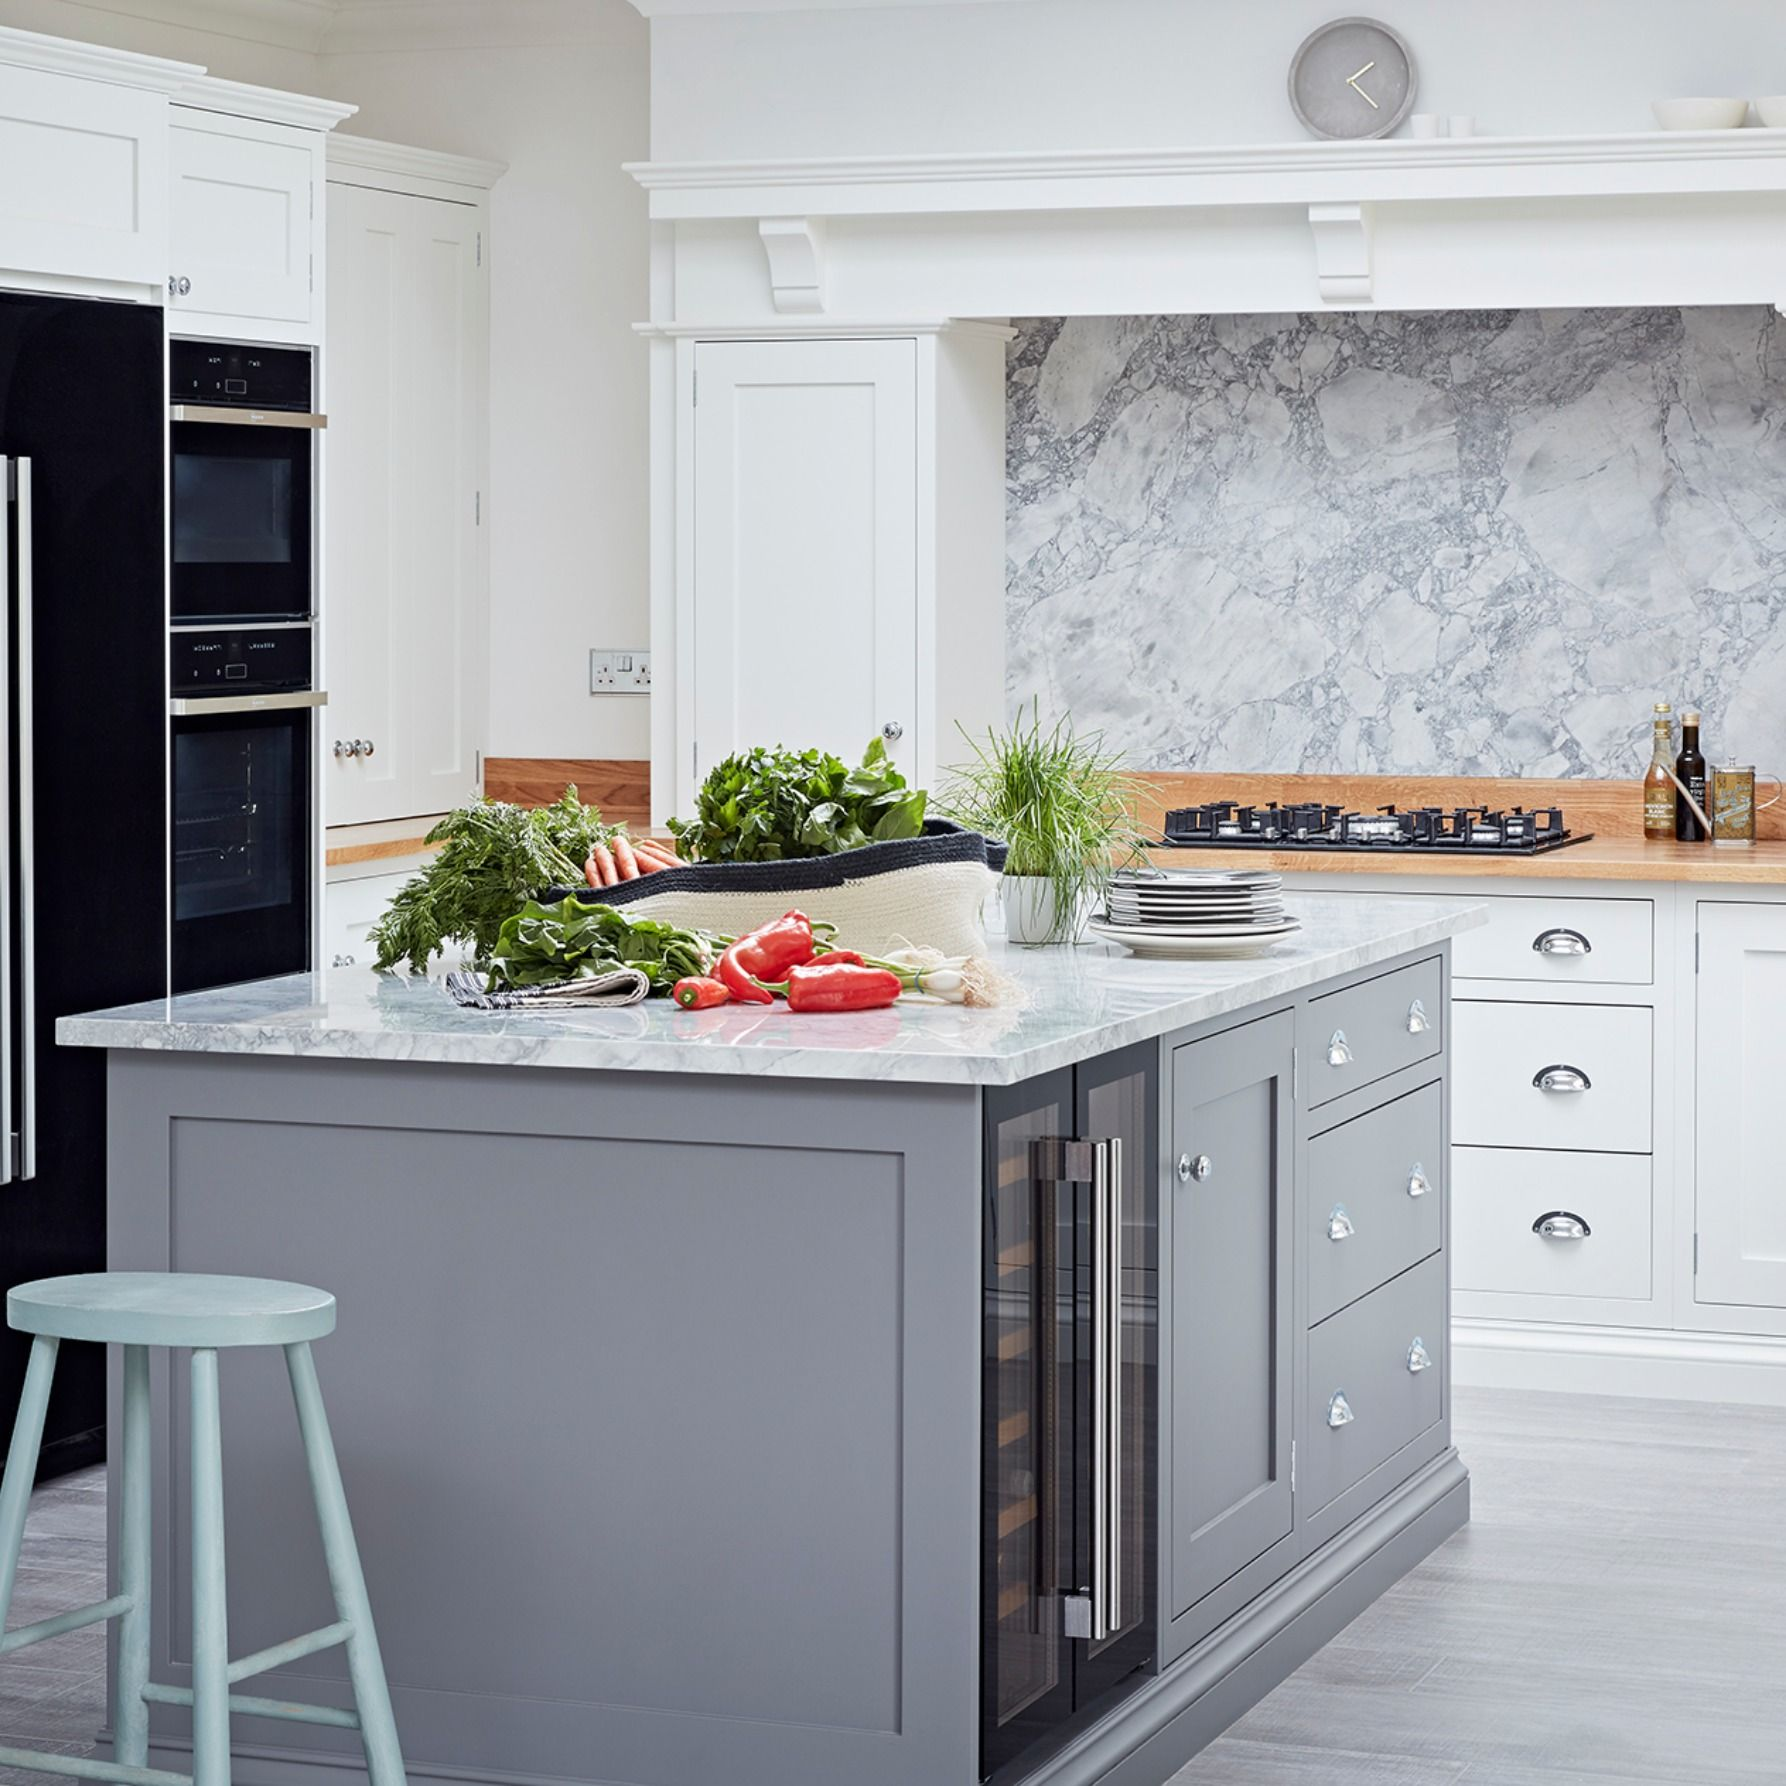 Shaker Style Kitchen Ideas: Pin By Lesley Quinan On Kitchen Island